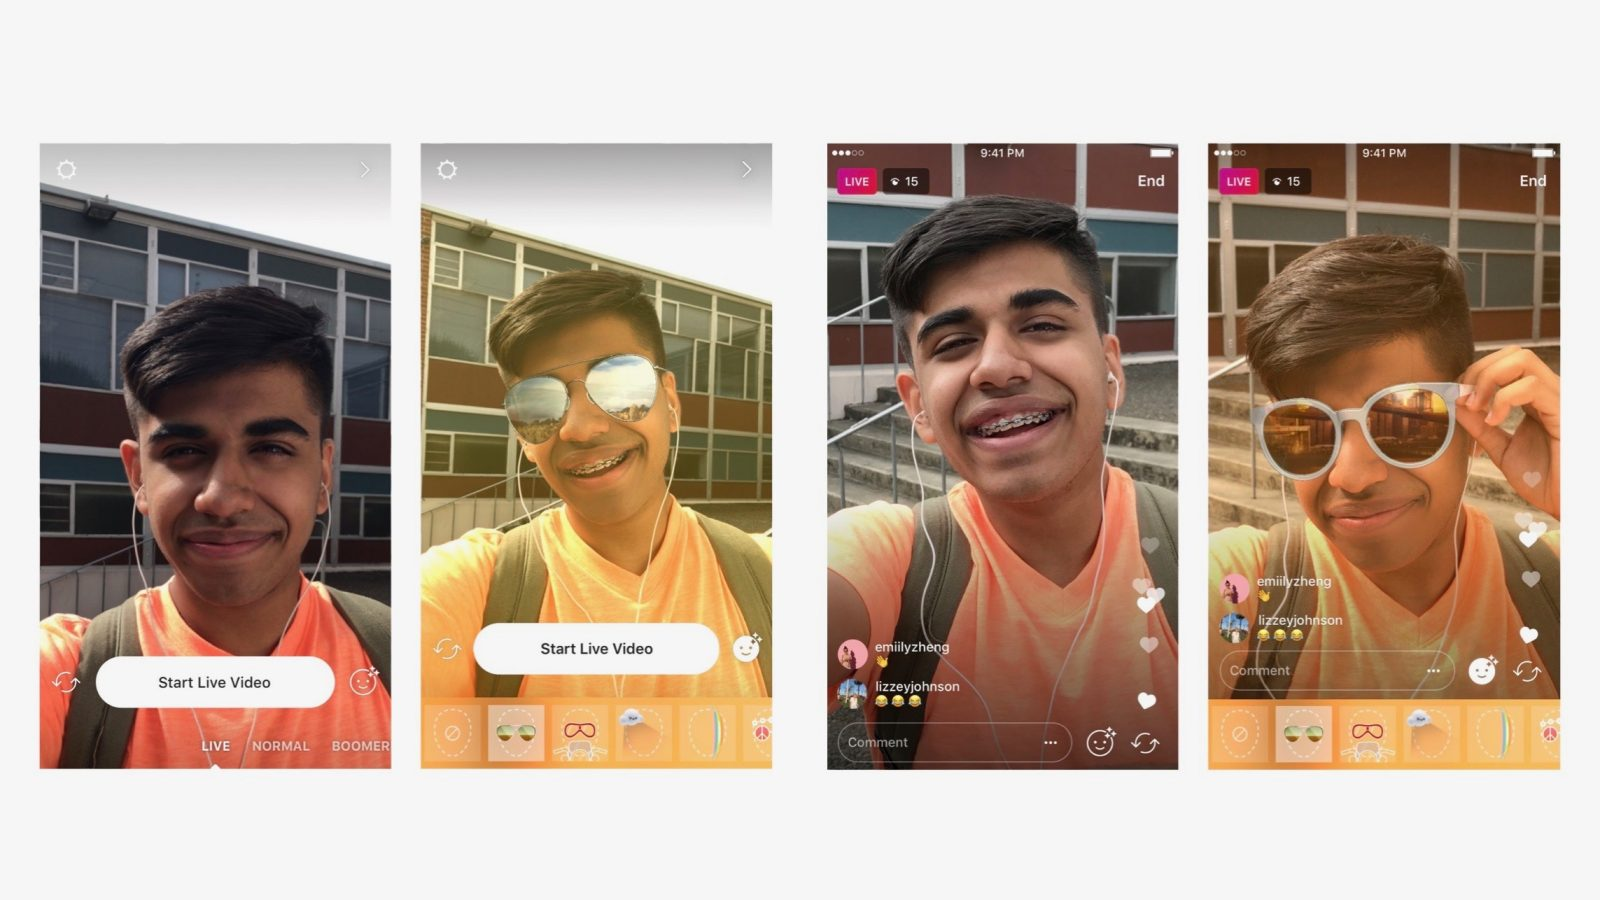 Instagram brings its popular face filters to live video